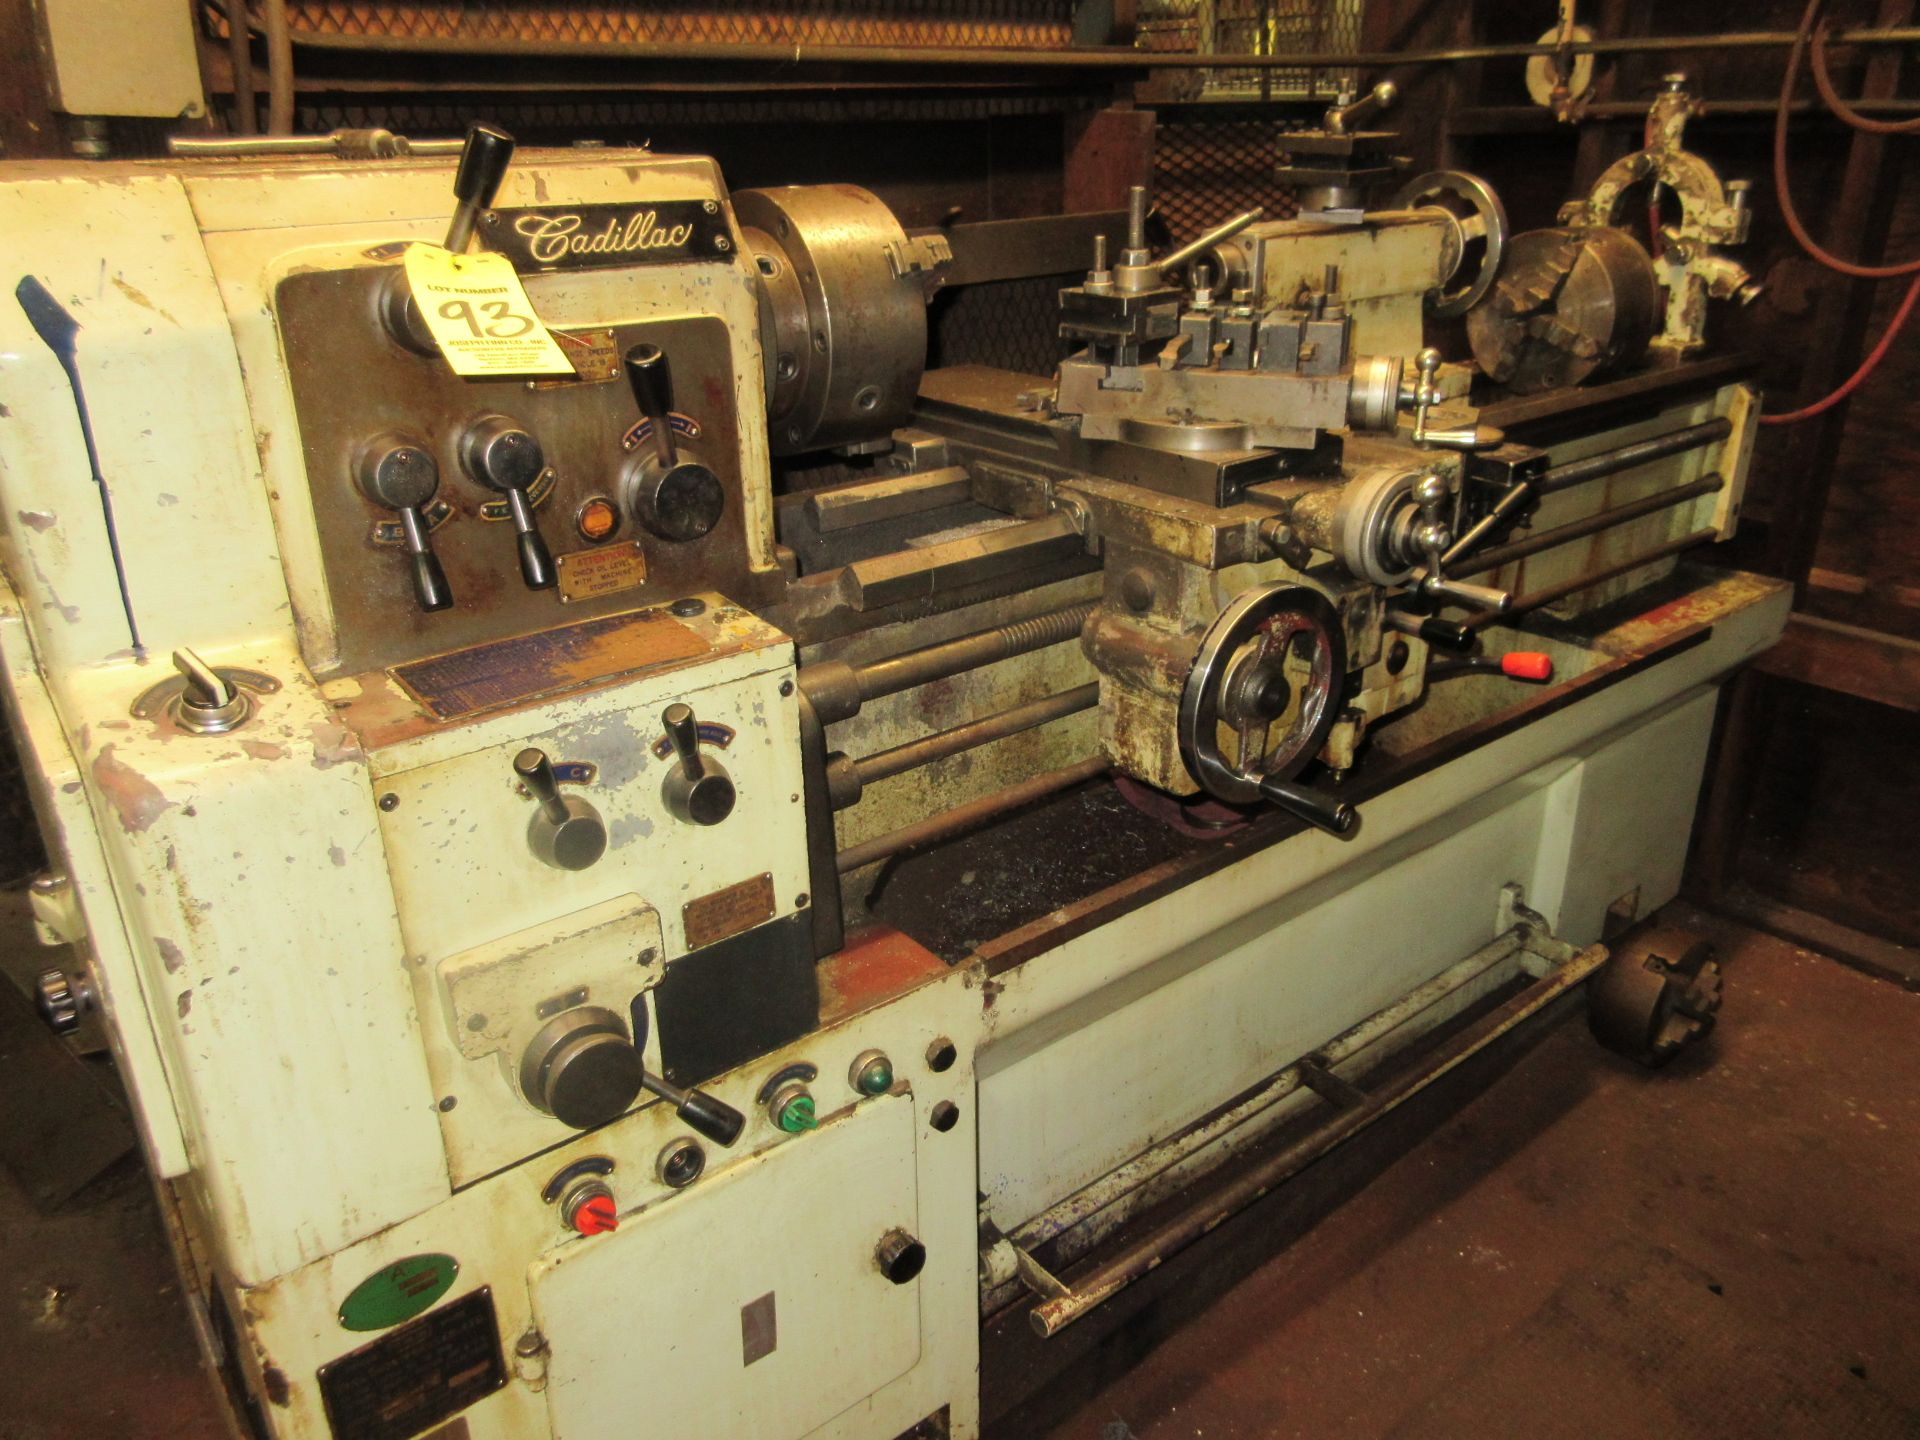 """(1) Cadillac 1040 Toolroom Lathe (1) 8"""" 3 Jaw & (1) 8"""" 4 Jaw Universal Independent Chucks & Steady"""